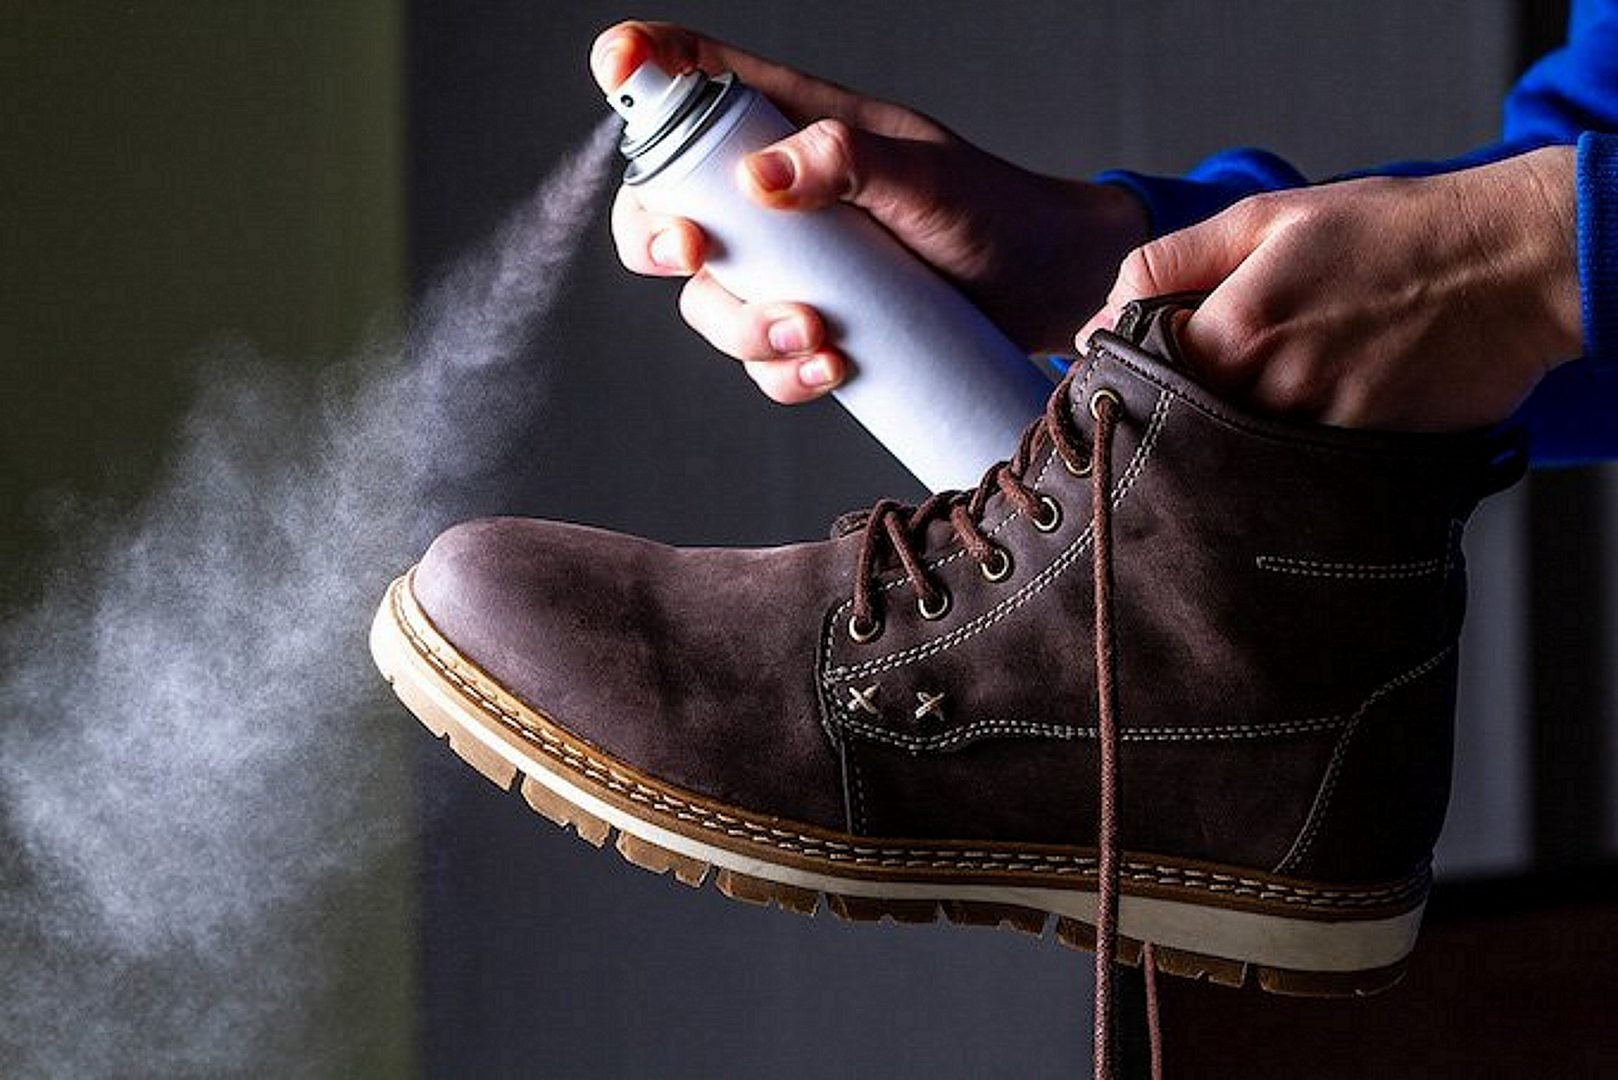 Waterproofing Spray Being used on Boots